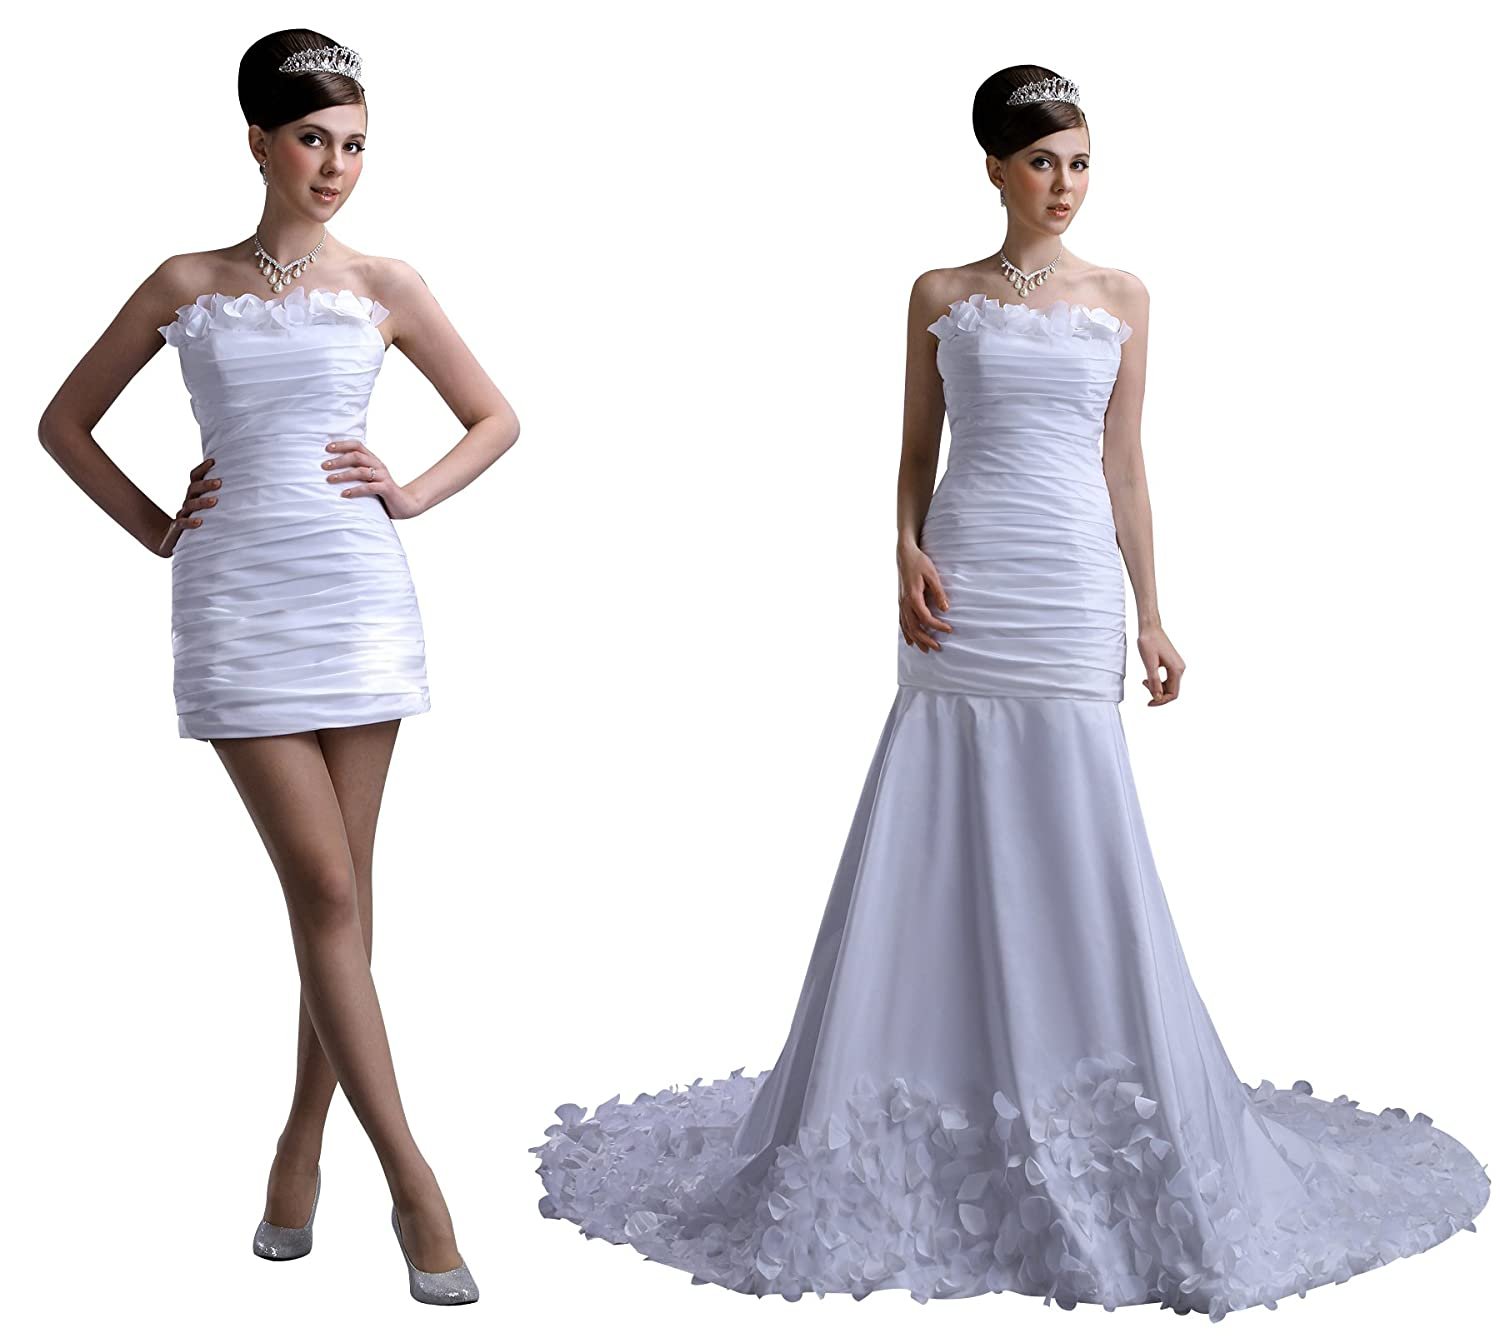 wedding dresses and wedding gowns 2013 wedding dresses trends